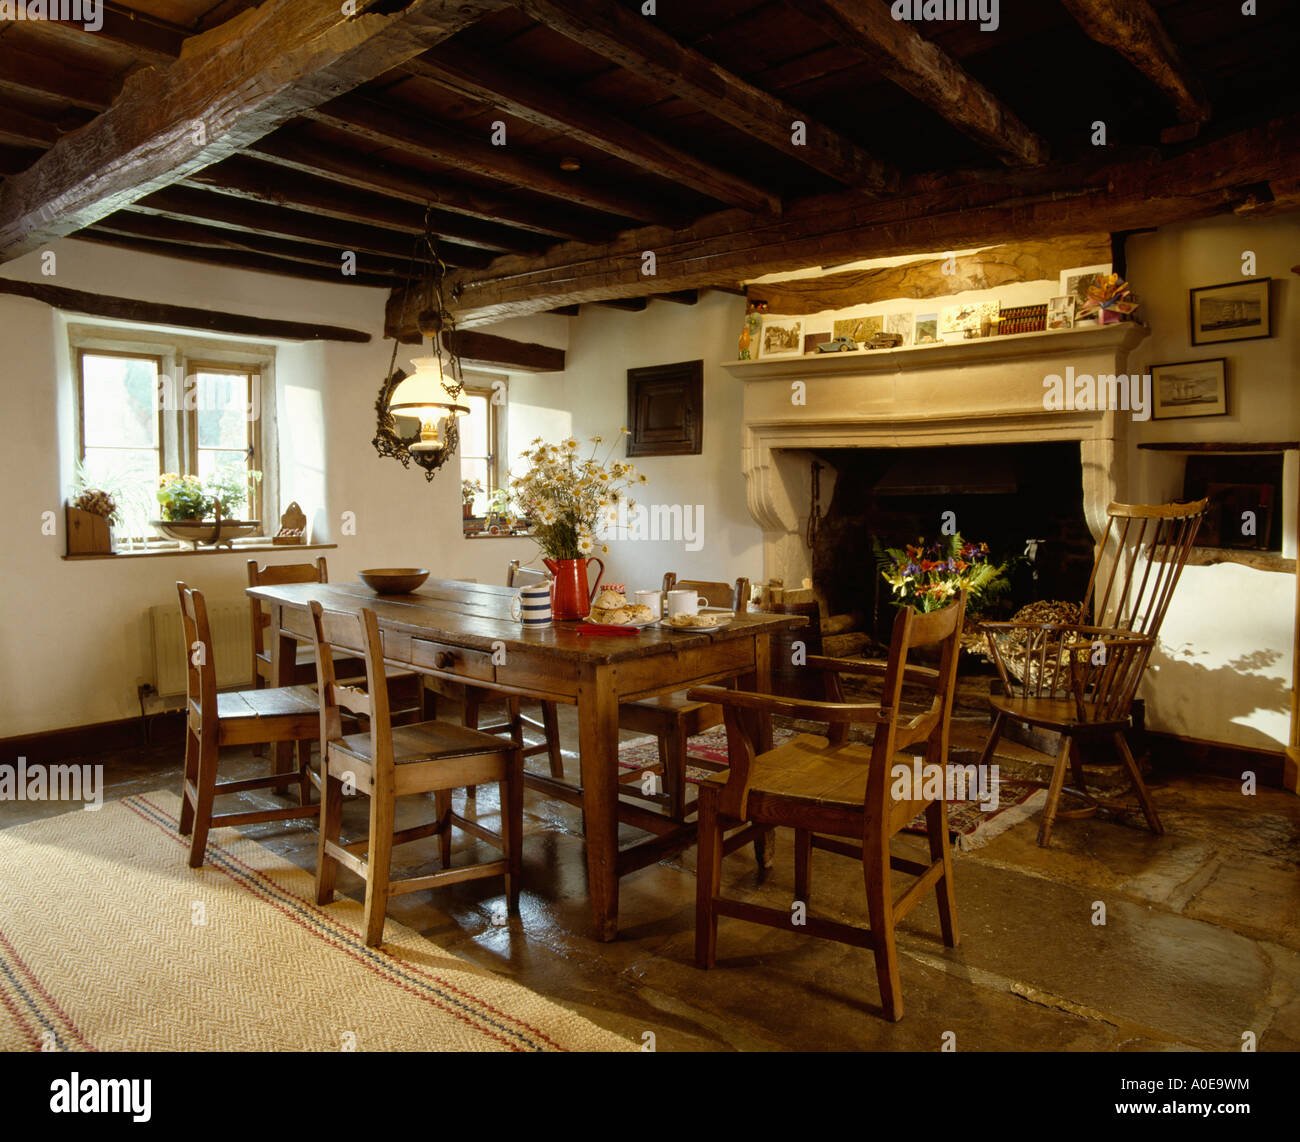 Chairs and table in front of fireplace in country diningroom - Stock Image